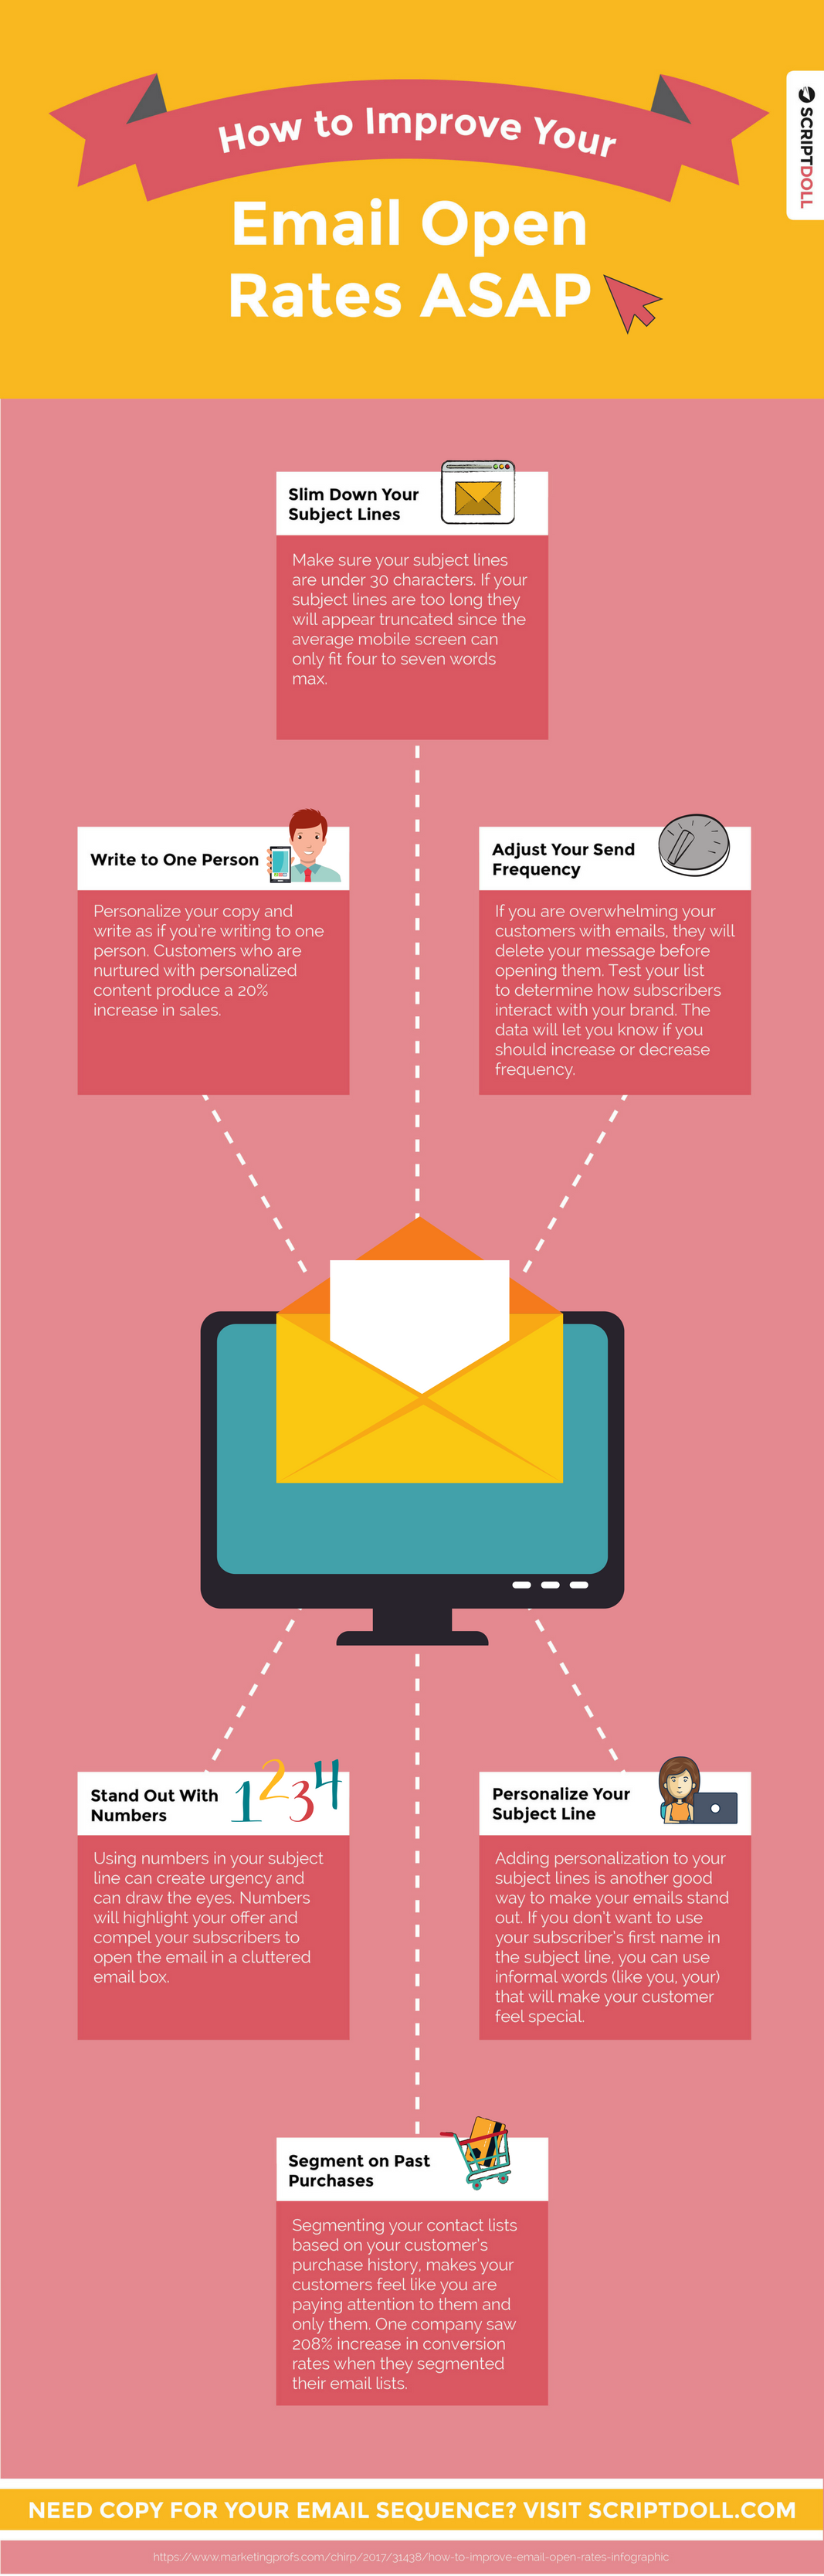 how to improve your email open rates asap